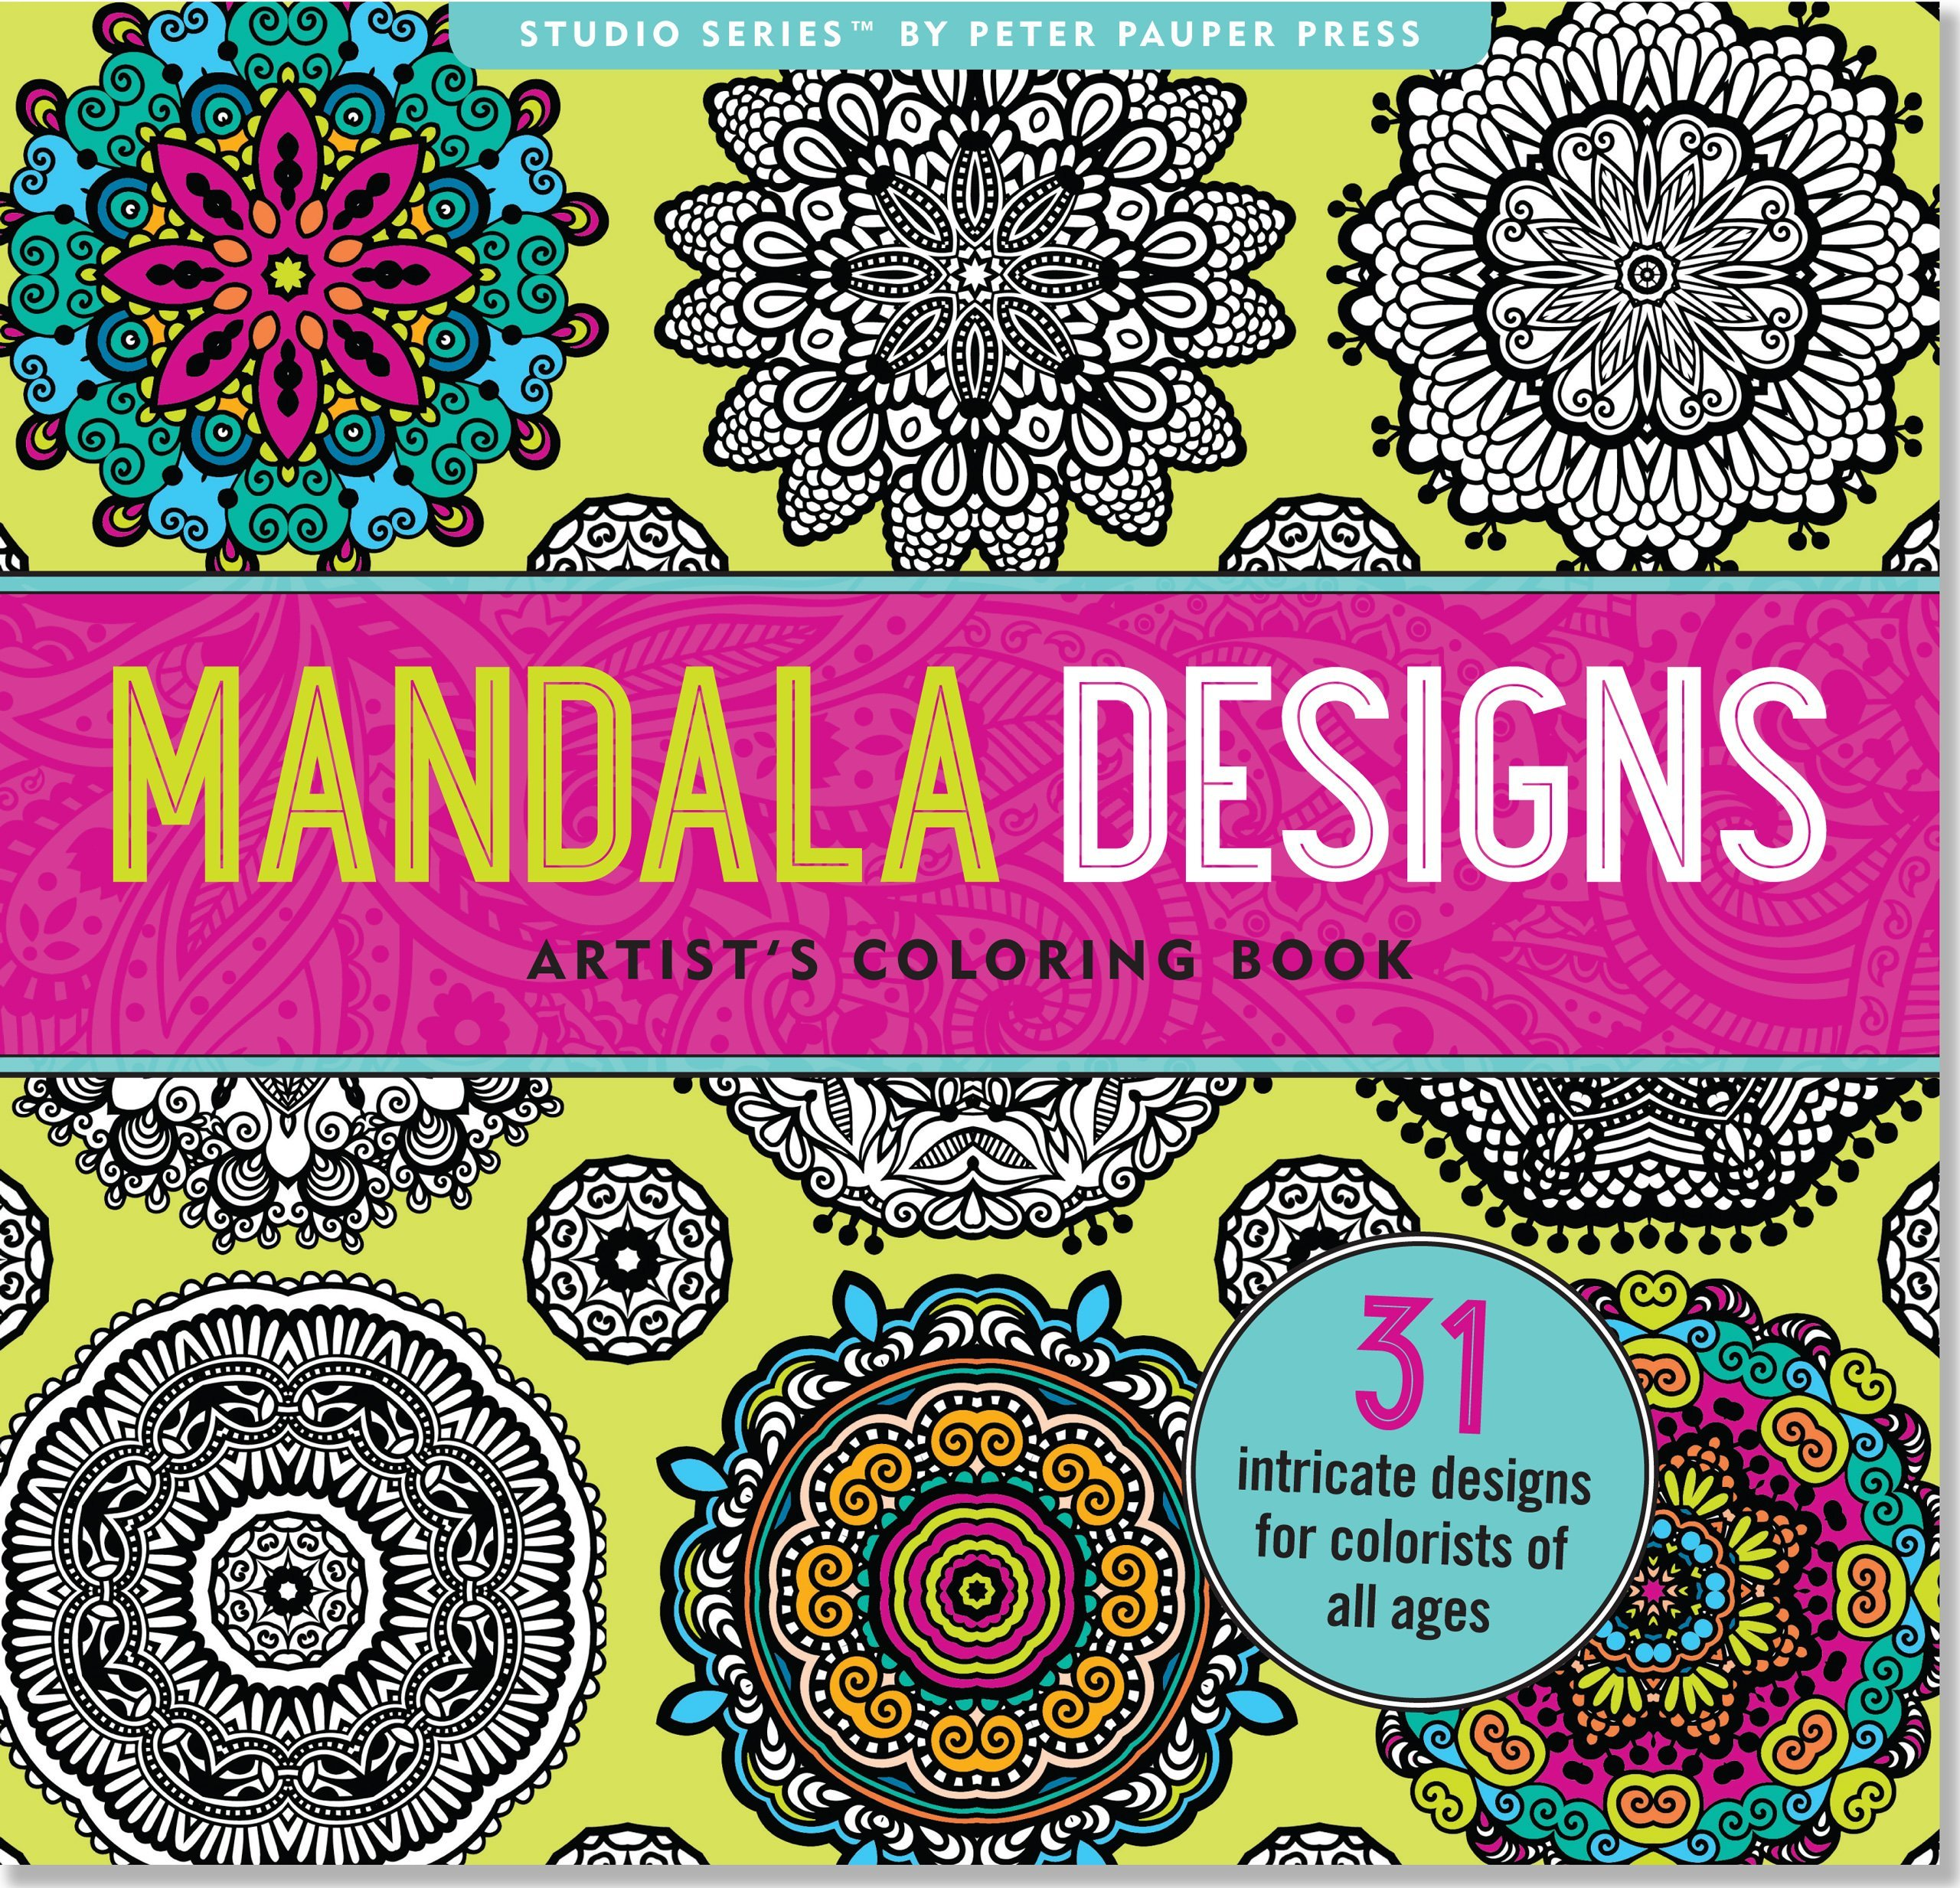 mandala designs adult coloring book by peter pauper press - Adults Coloring Books